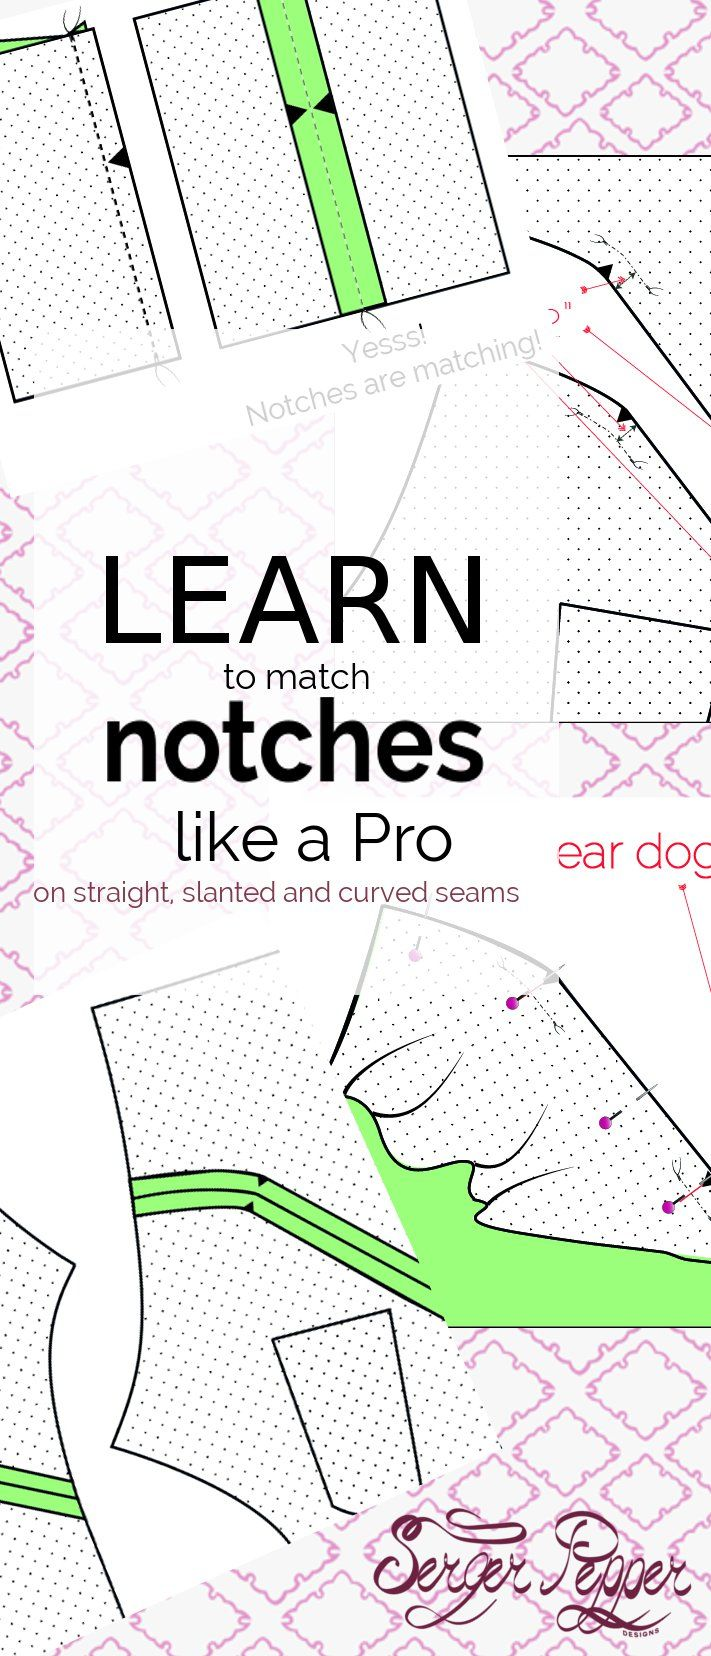 Serger Pepper - Learn to use Notches like a Pro: oyu'll never fail putting together a slanted or curved seam again. All the whys and the how-tos you need to work with sewing notches. Re-pin this now! only on SergerPepper.com